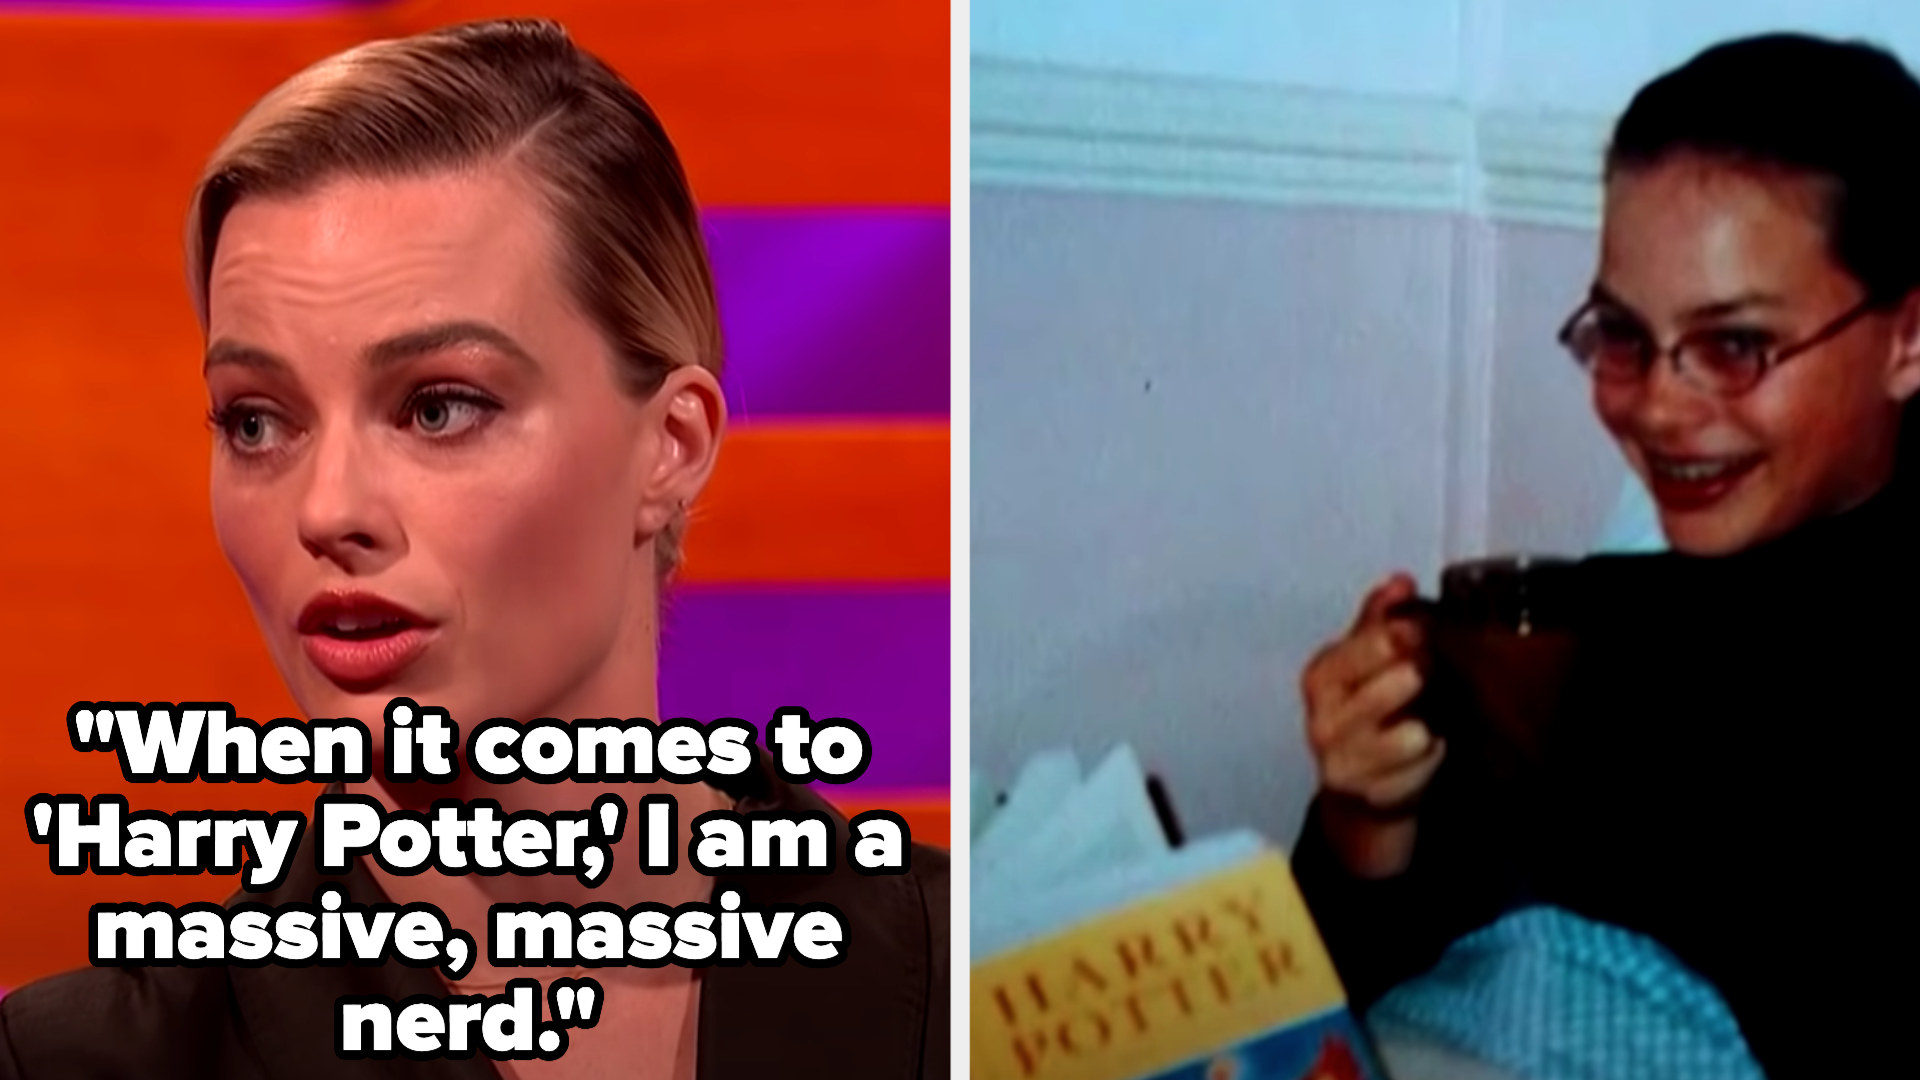 Margot Robbie saying she's a massive Harry Potter nerd with a picture of her reading Harry Potter with glasses as a teen